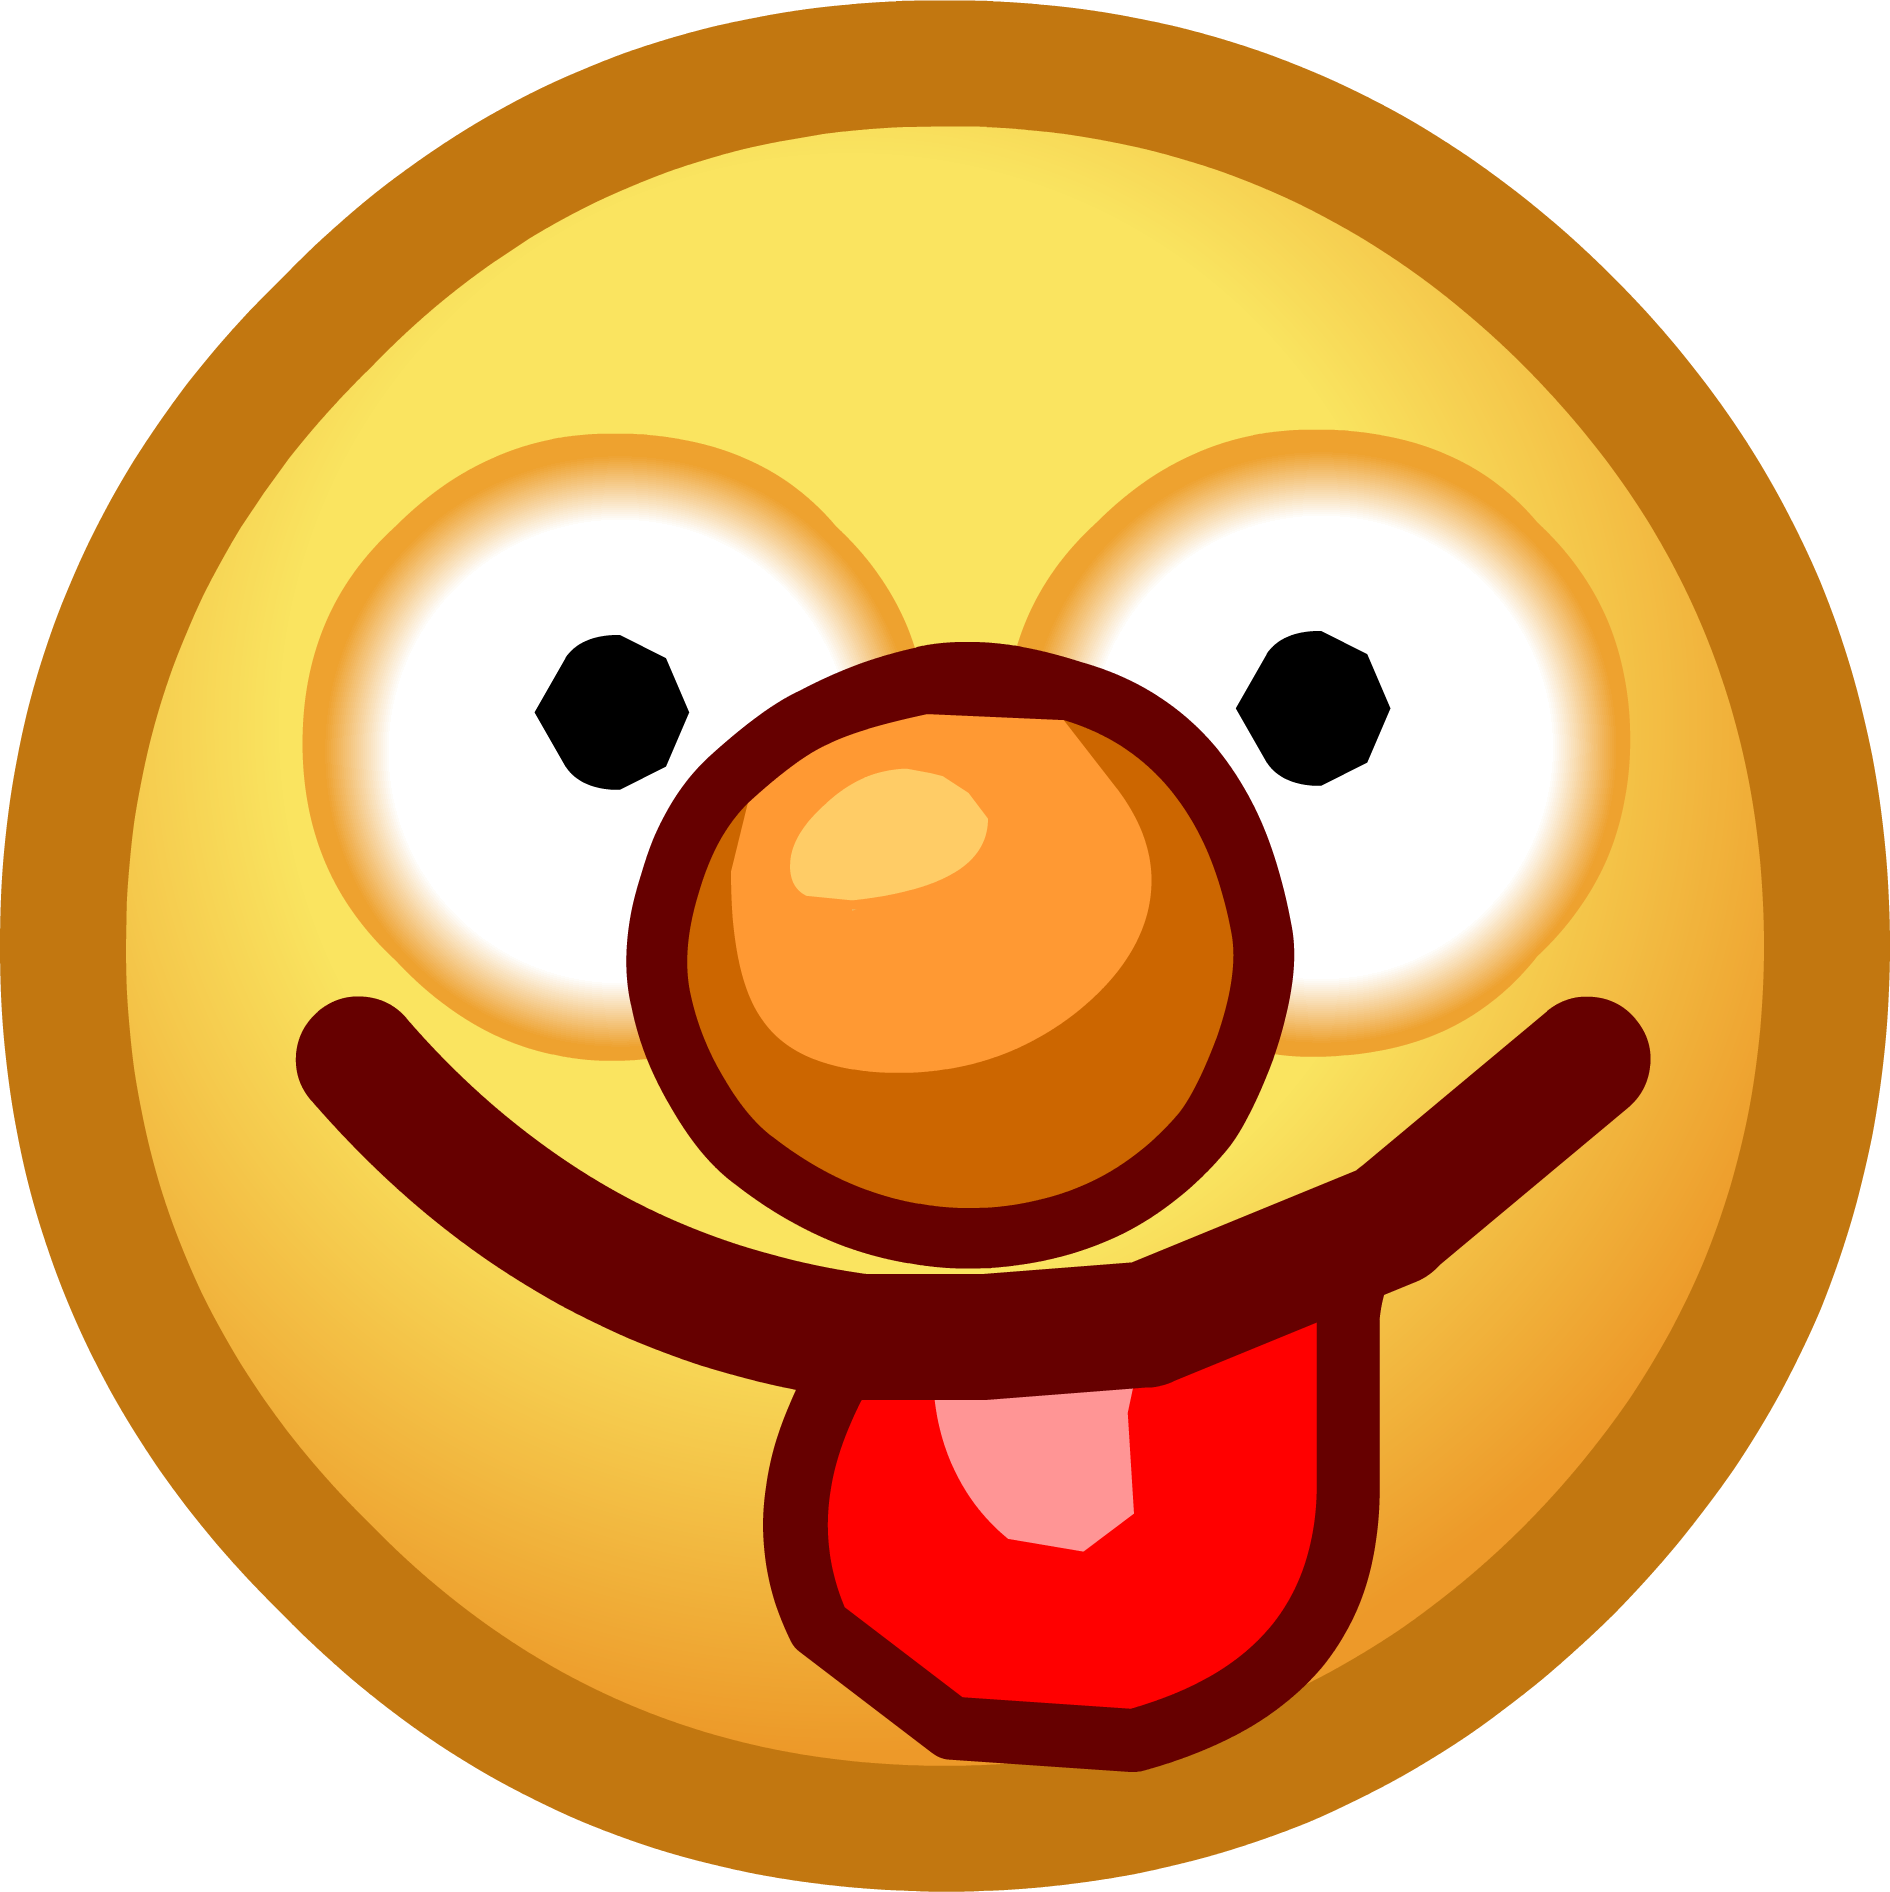 1890x1892 Smiley Face With Tongue Out Clipart